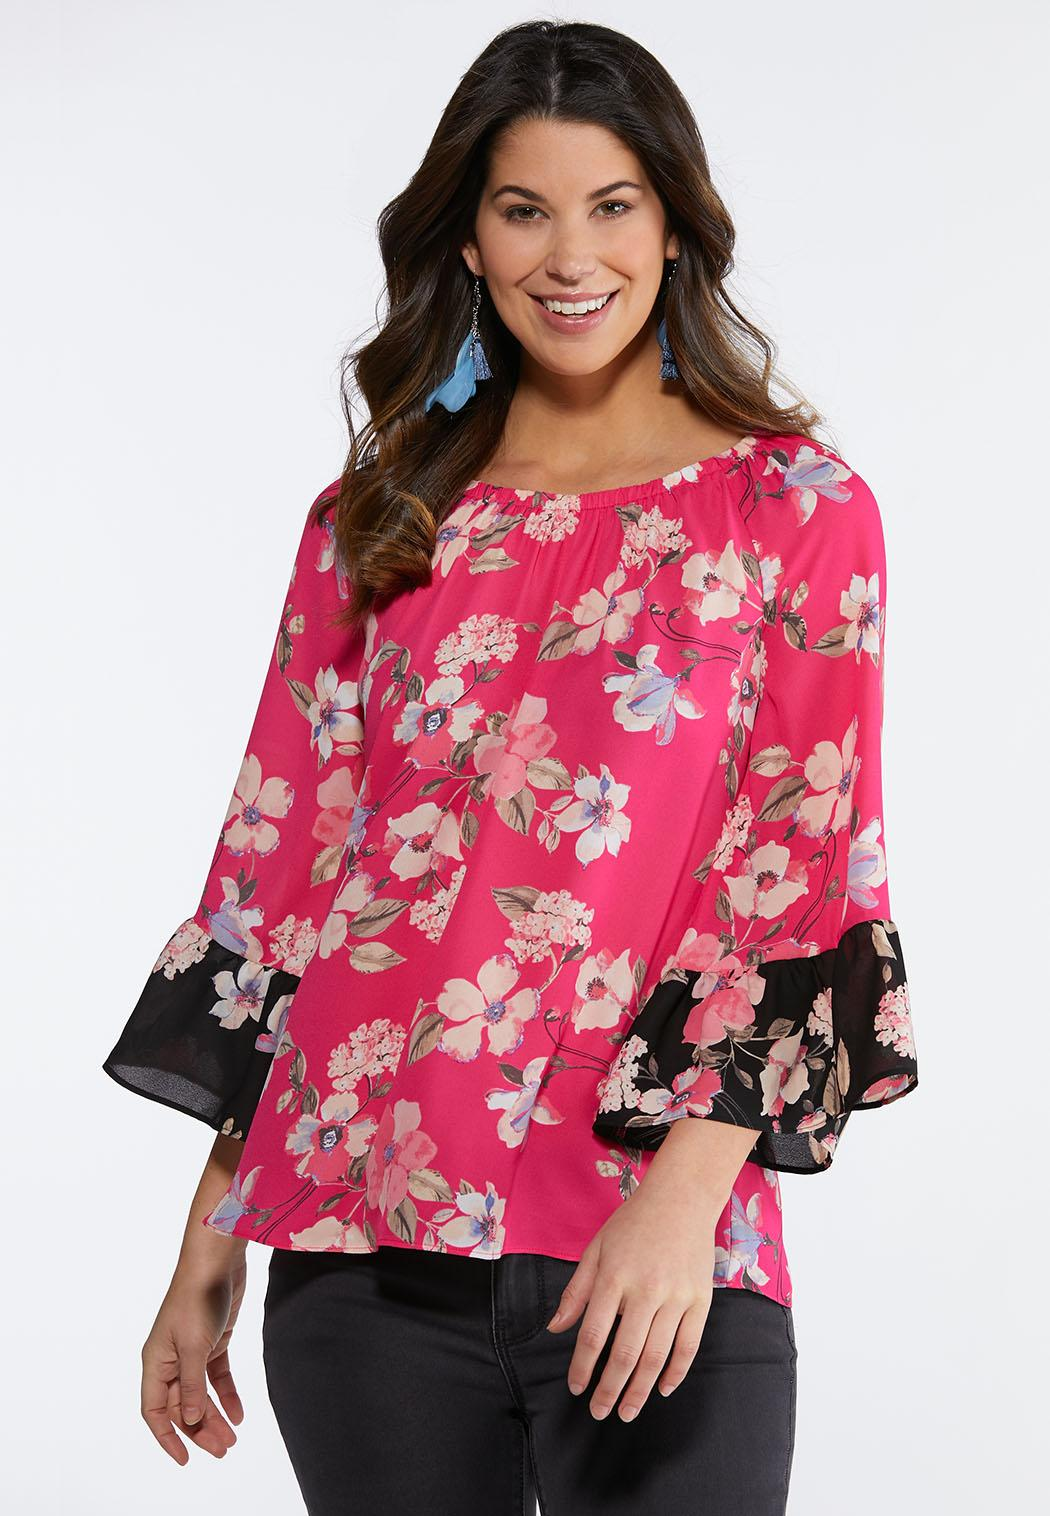 2db19d27155da Pink Floral Poet Top Shirts   Blouses Cato Fashions